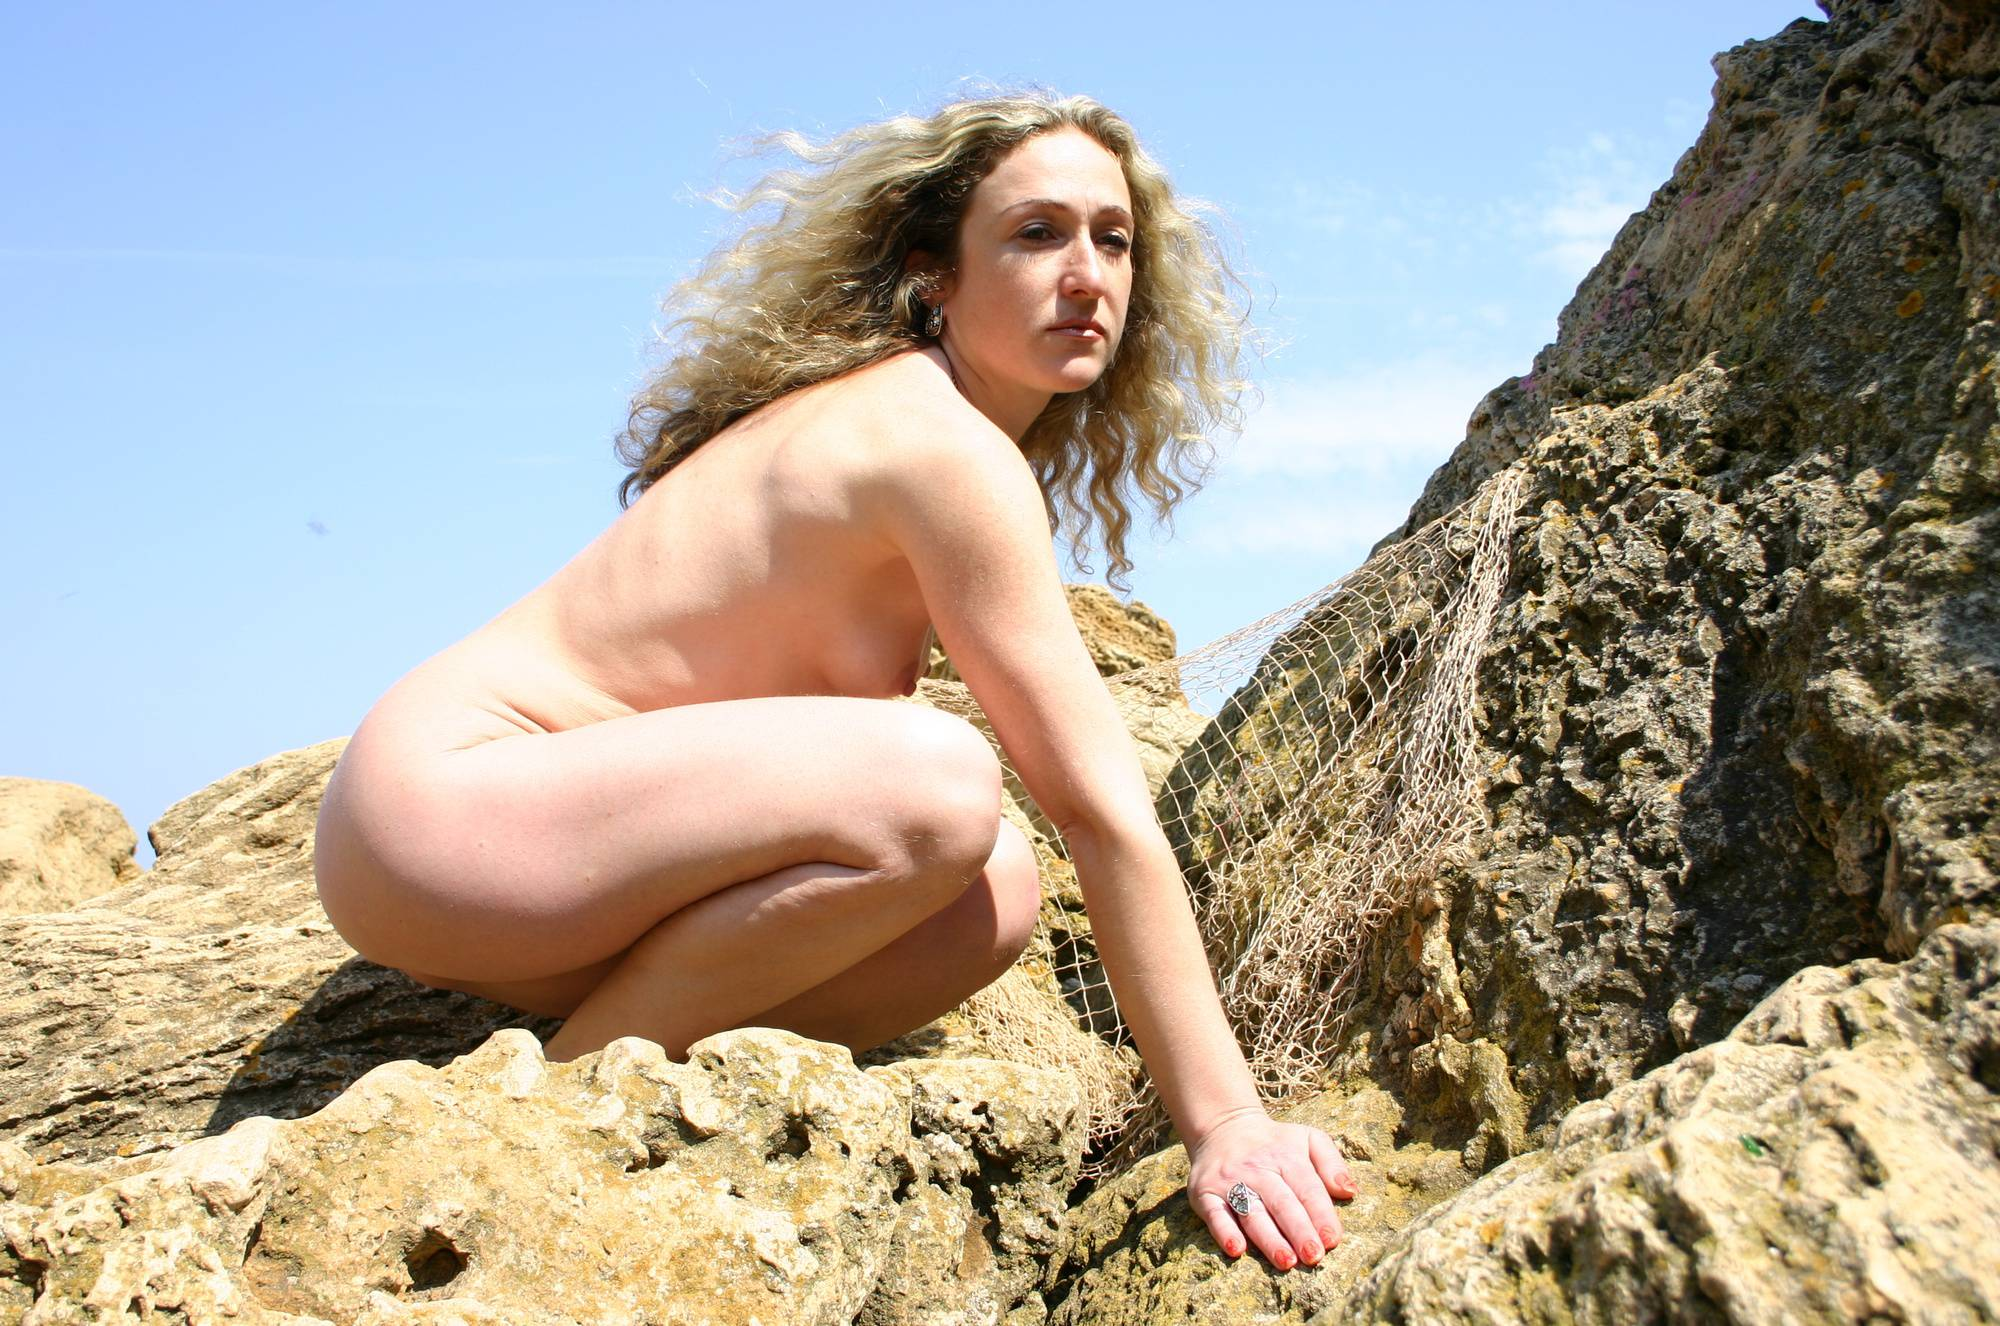 Nudist Pictures Mother Nude Mountain Net - 2